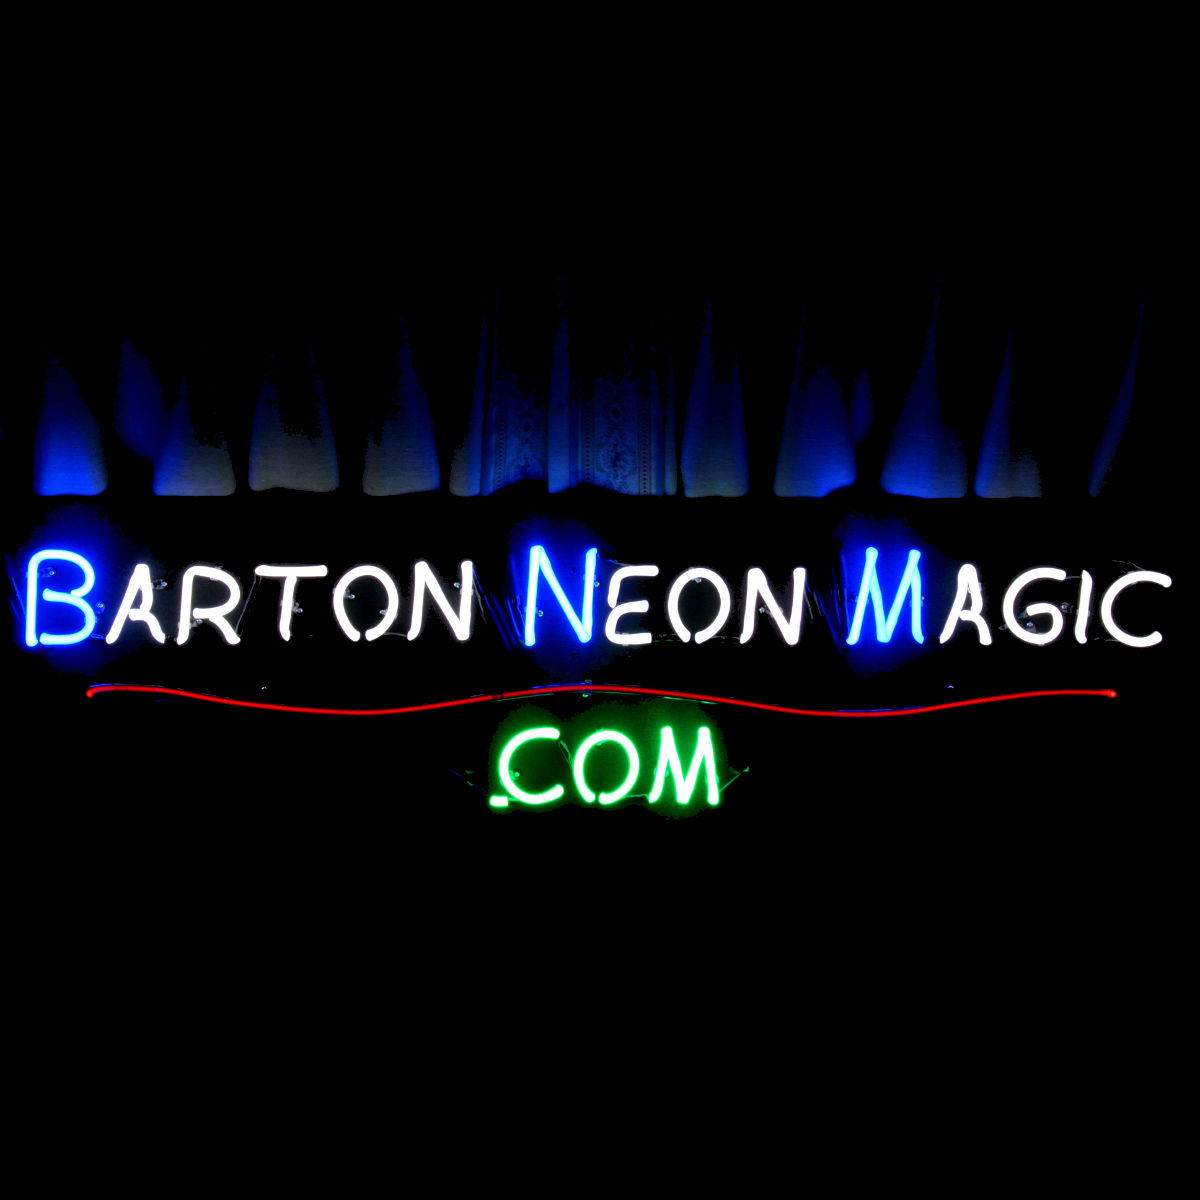 Stunning Custom Designer Neon Lighting by John Barton - BartonNeonMagic.com